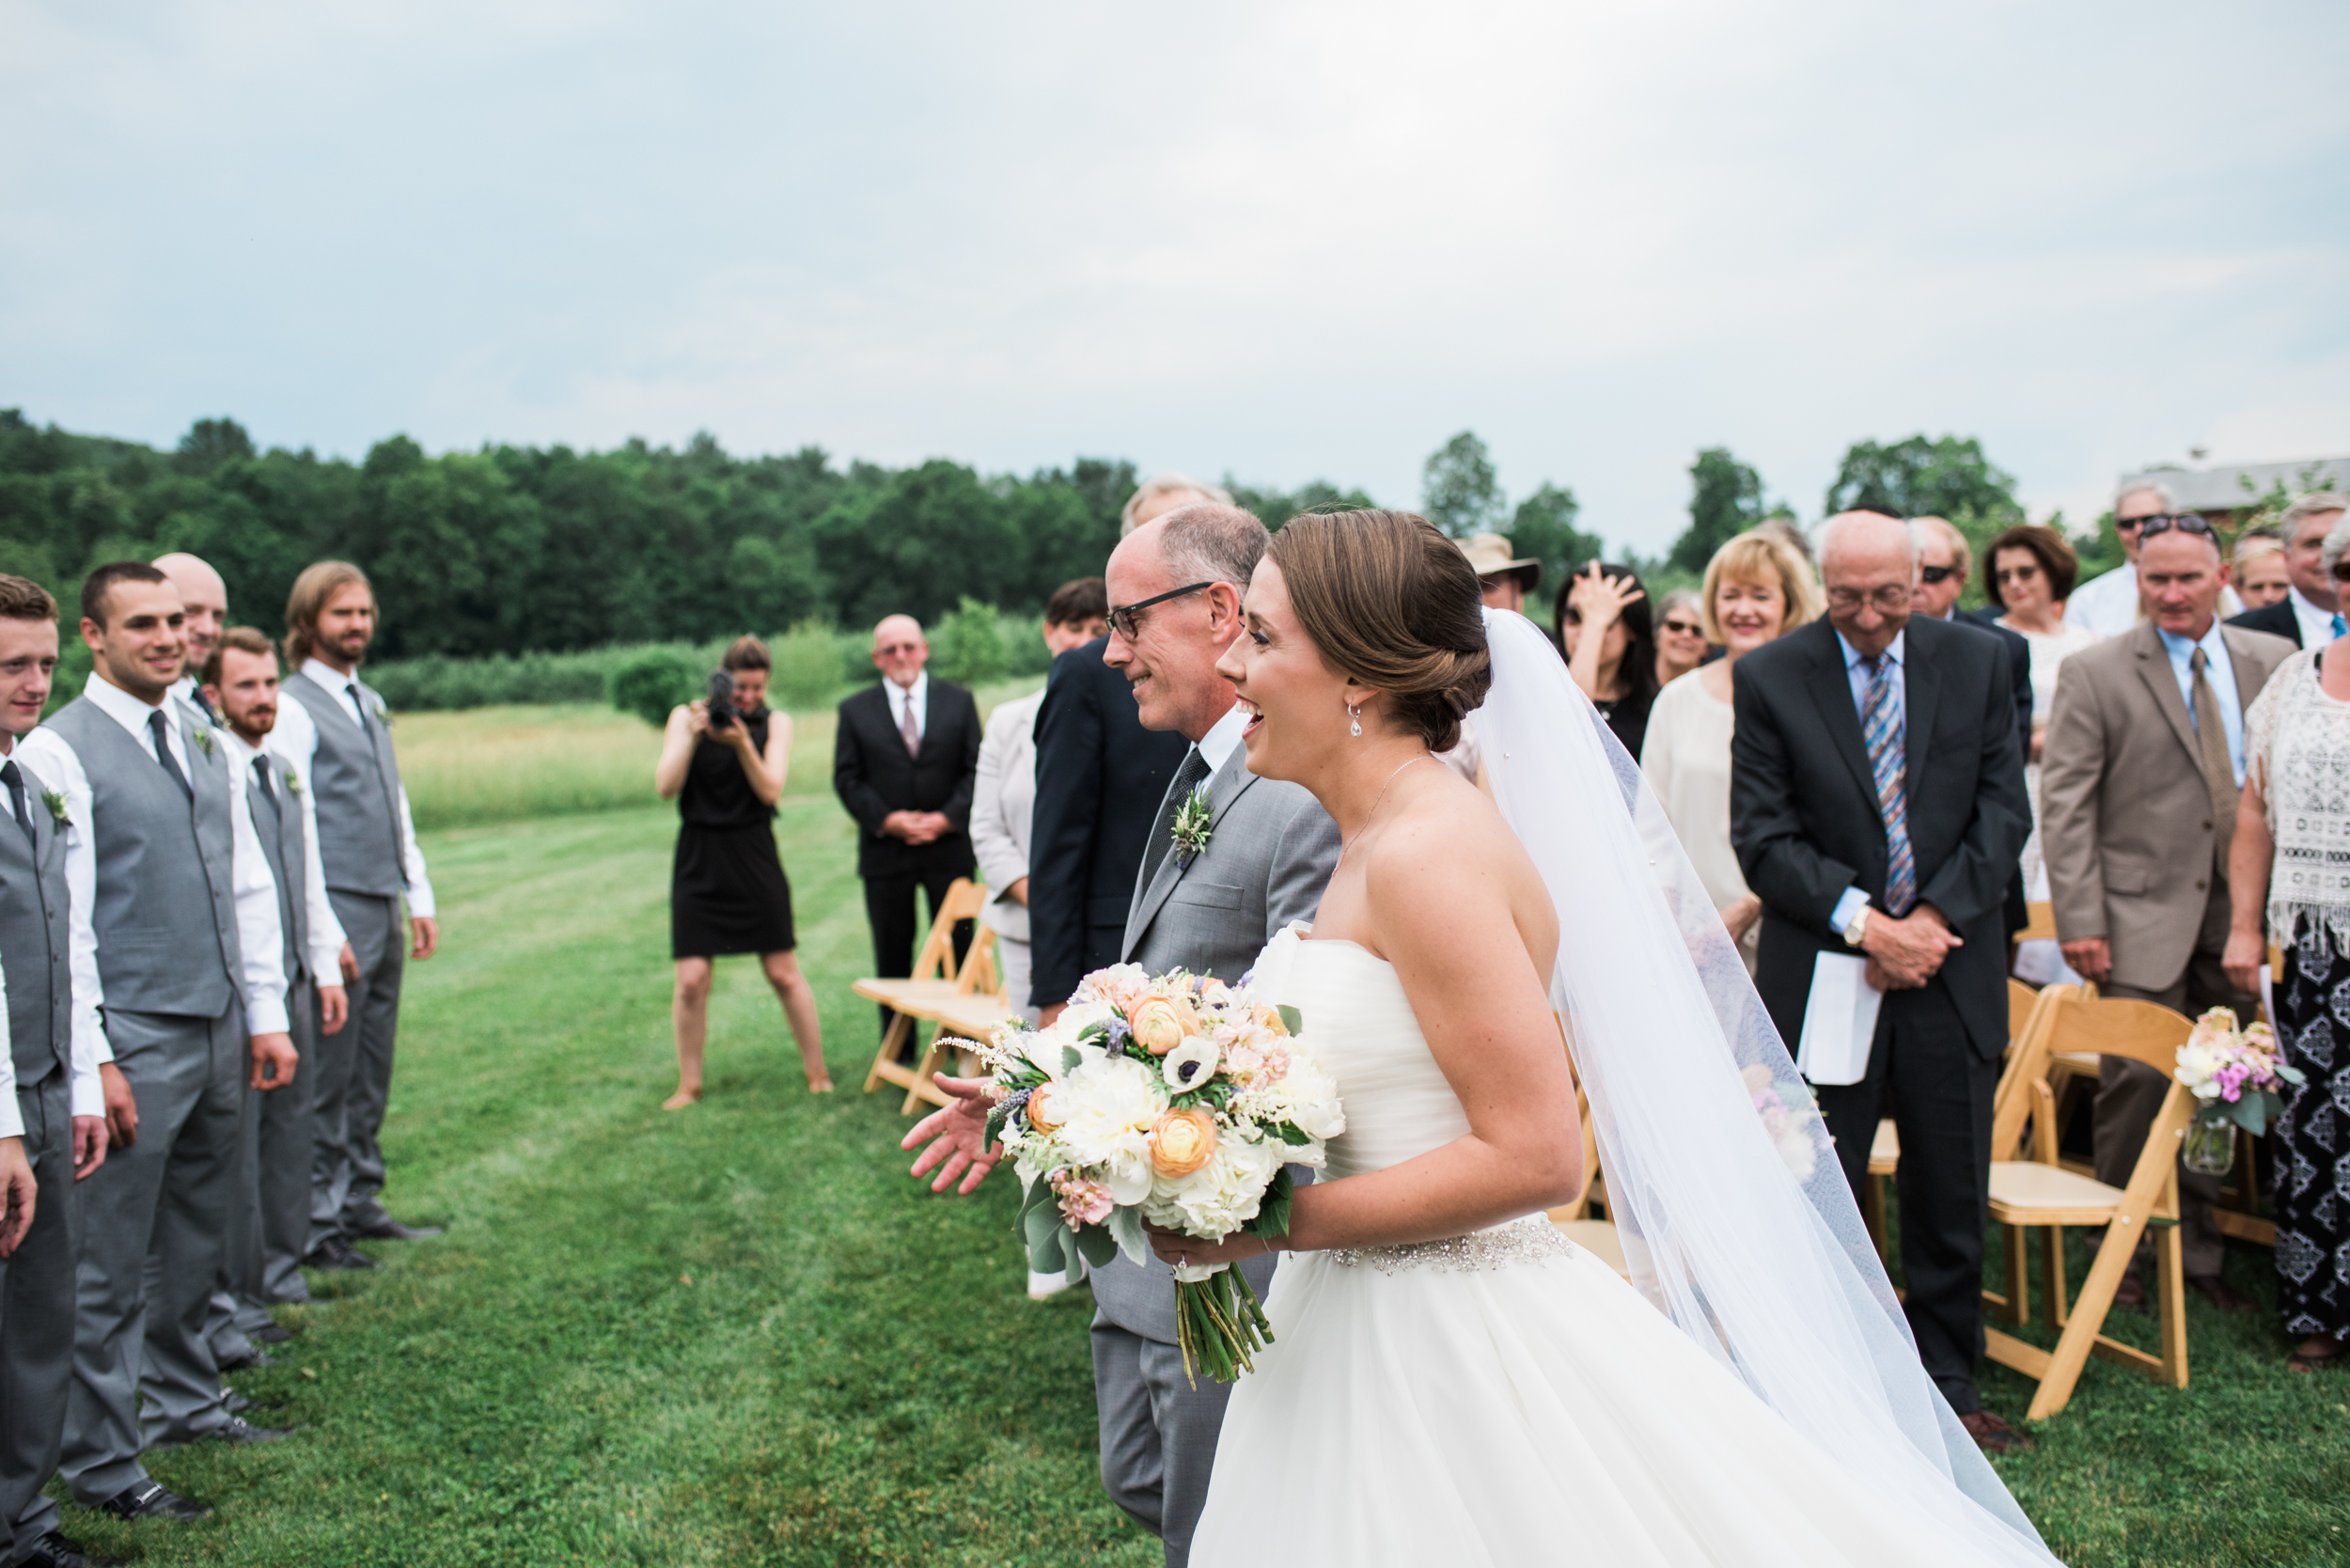 Wedding Photographers in Stockbridge MA